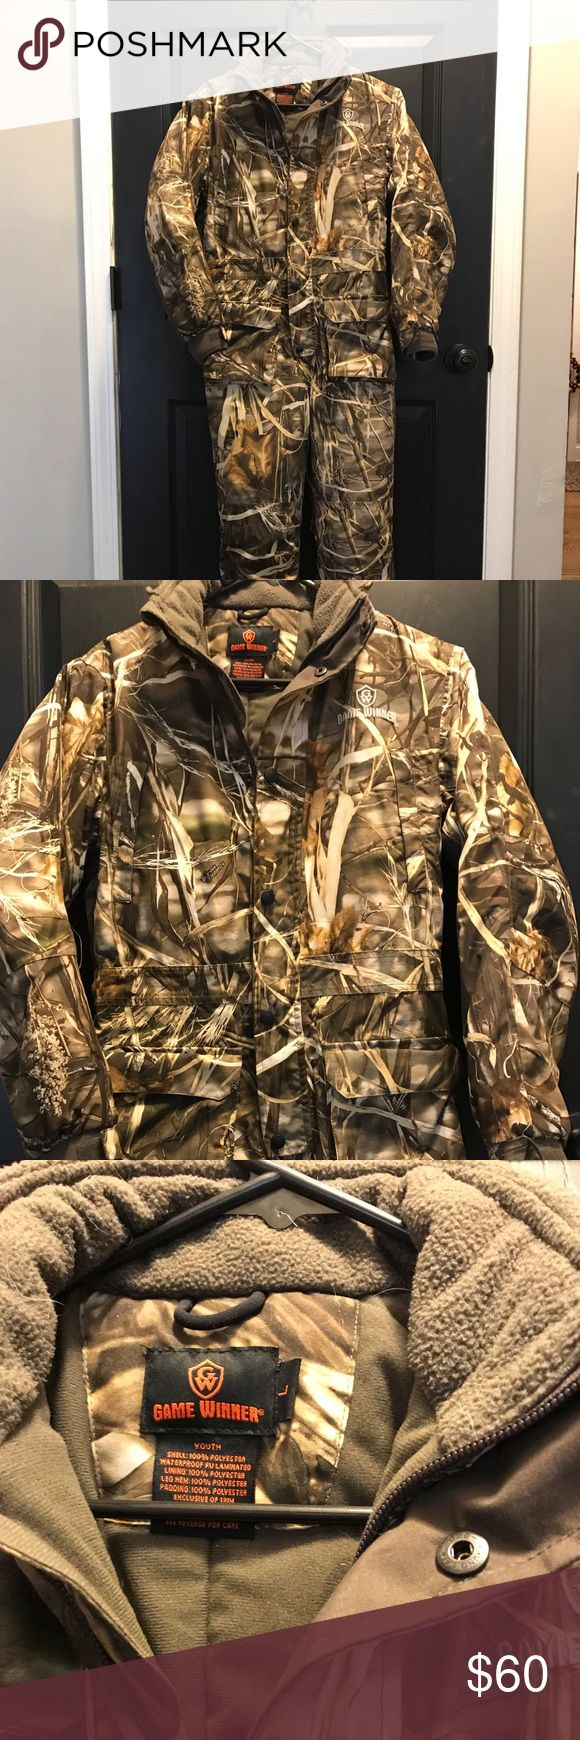 Game Winner waterproof insulated  coveralls Game winner waterproof insulated hunting camo coveralls size youth Large in mint condition. Make offer. We paid $100 from another site and they don't fit our son. Great buy :) Game Winner Jackets & Coats